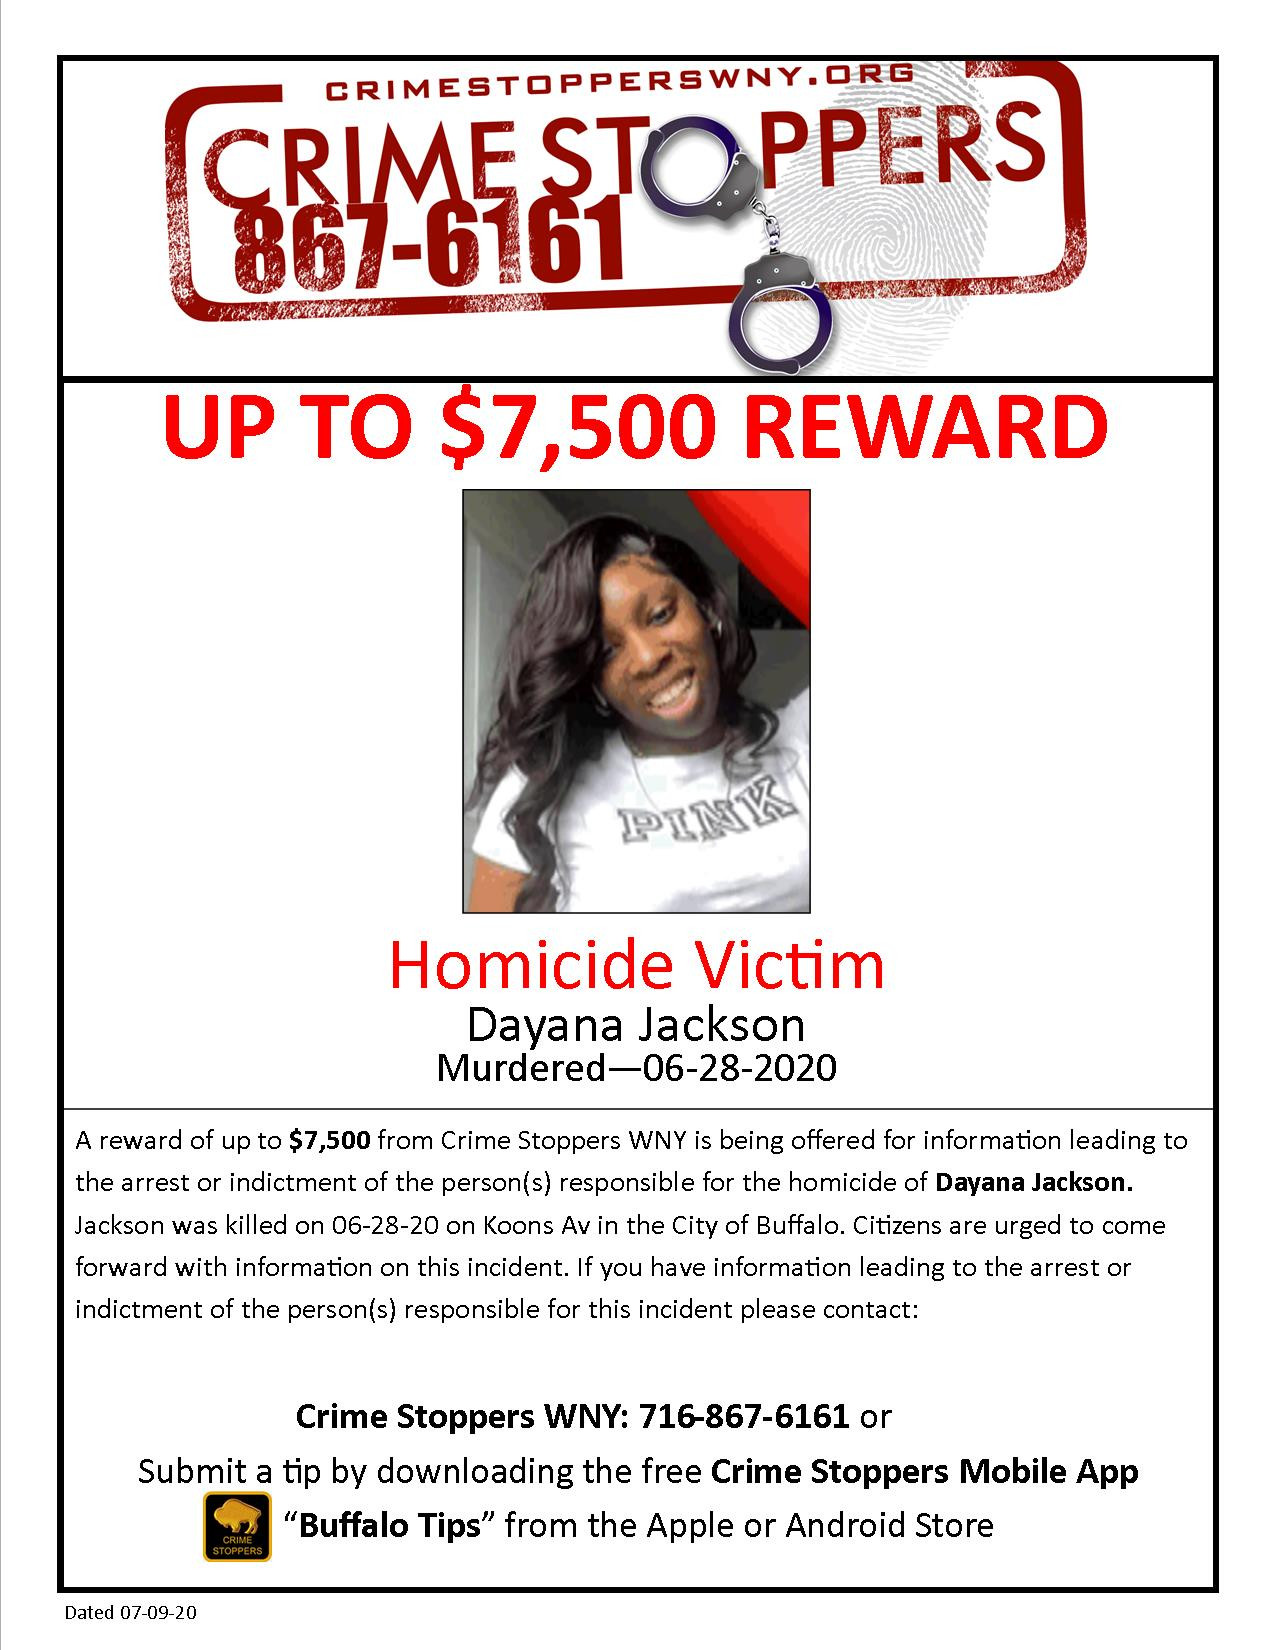 CrimeStoppers_HomicideVictim_DayanaJackson